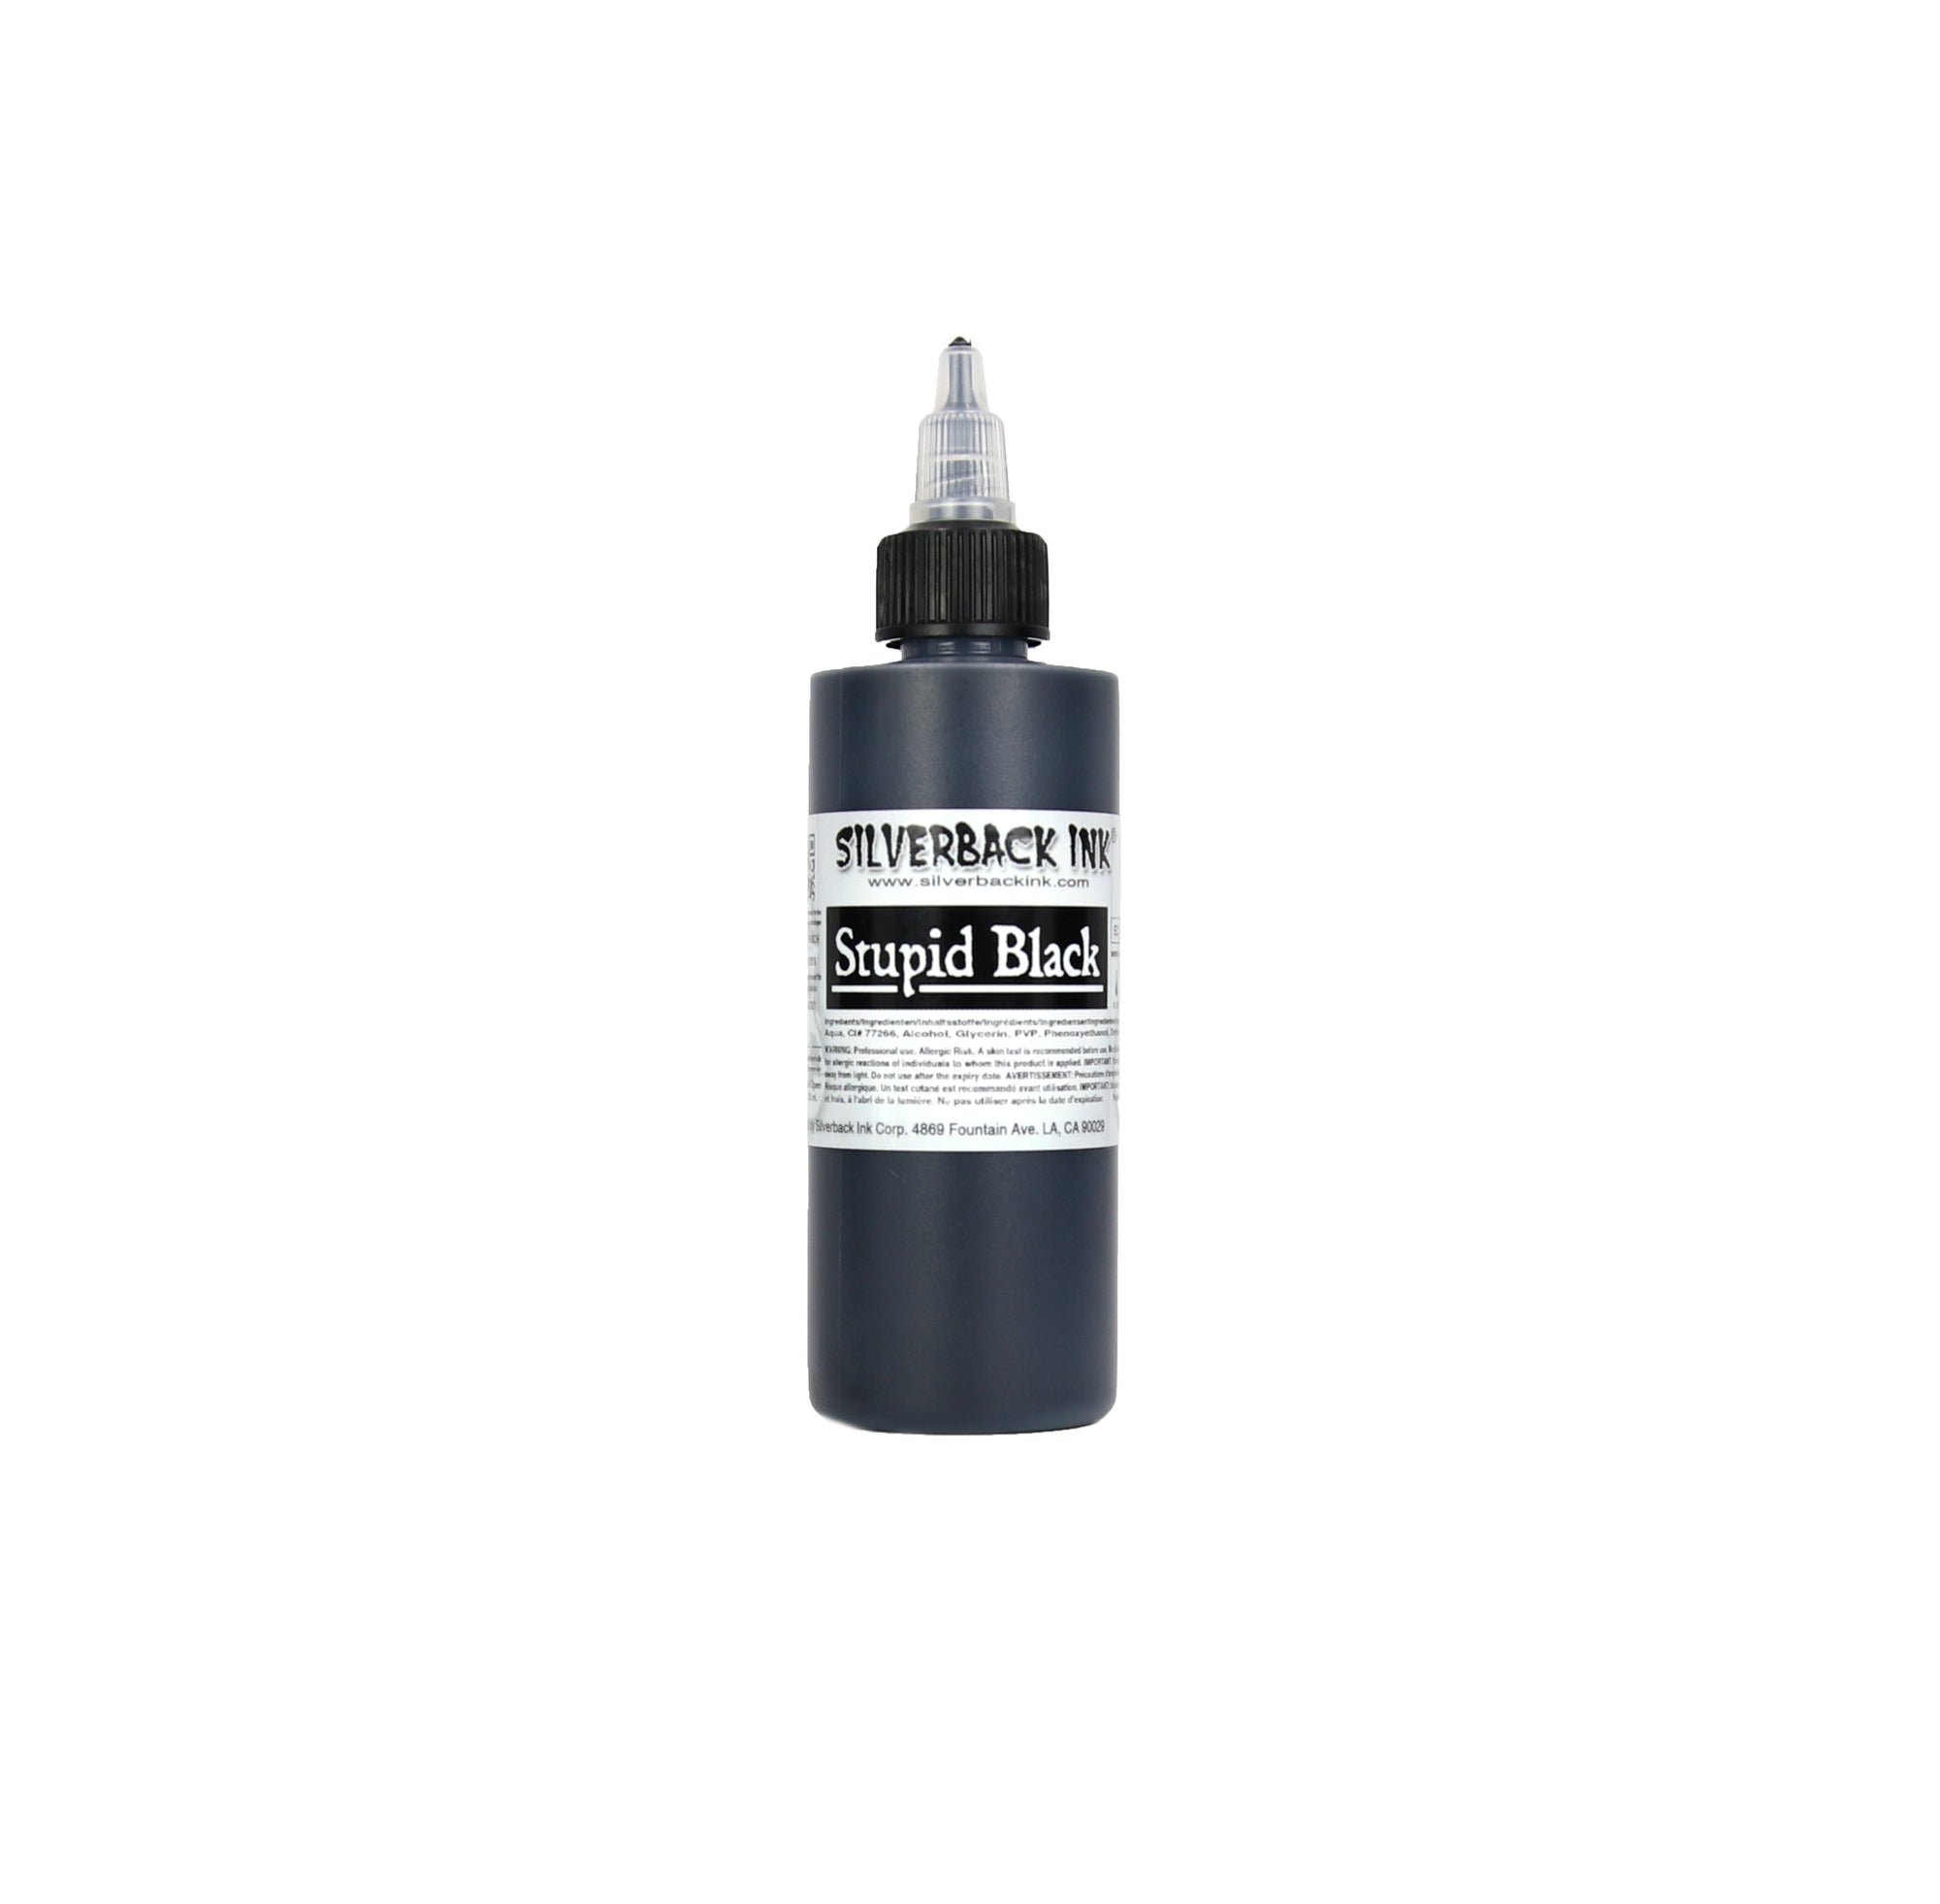 Silverback Ink Stupid Black - 4oz Bottle